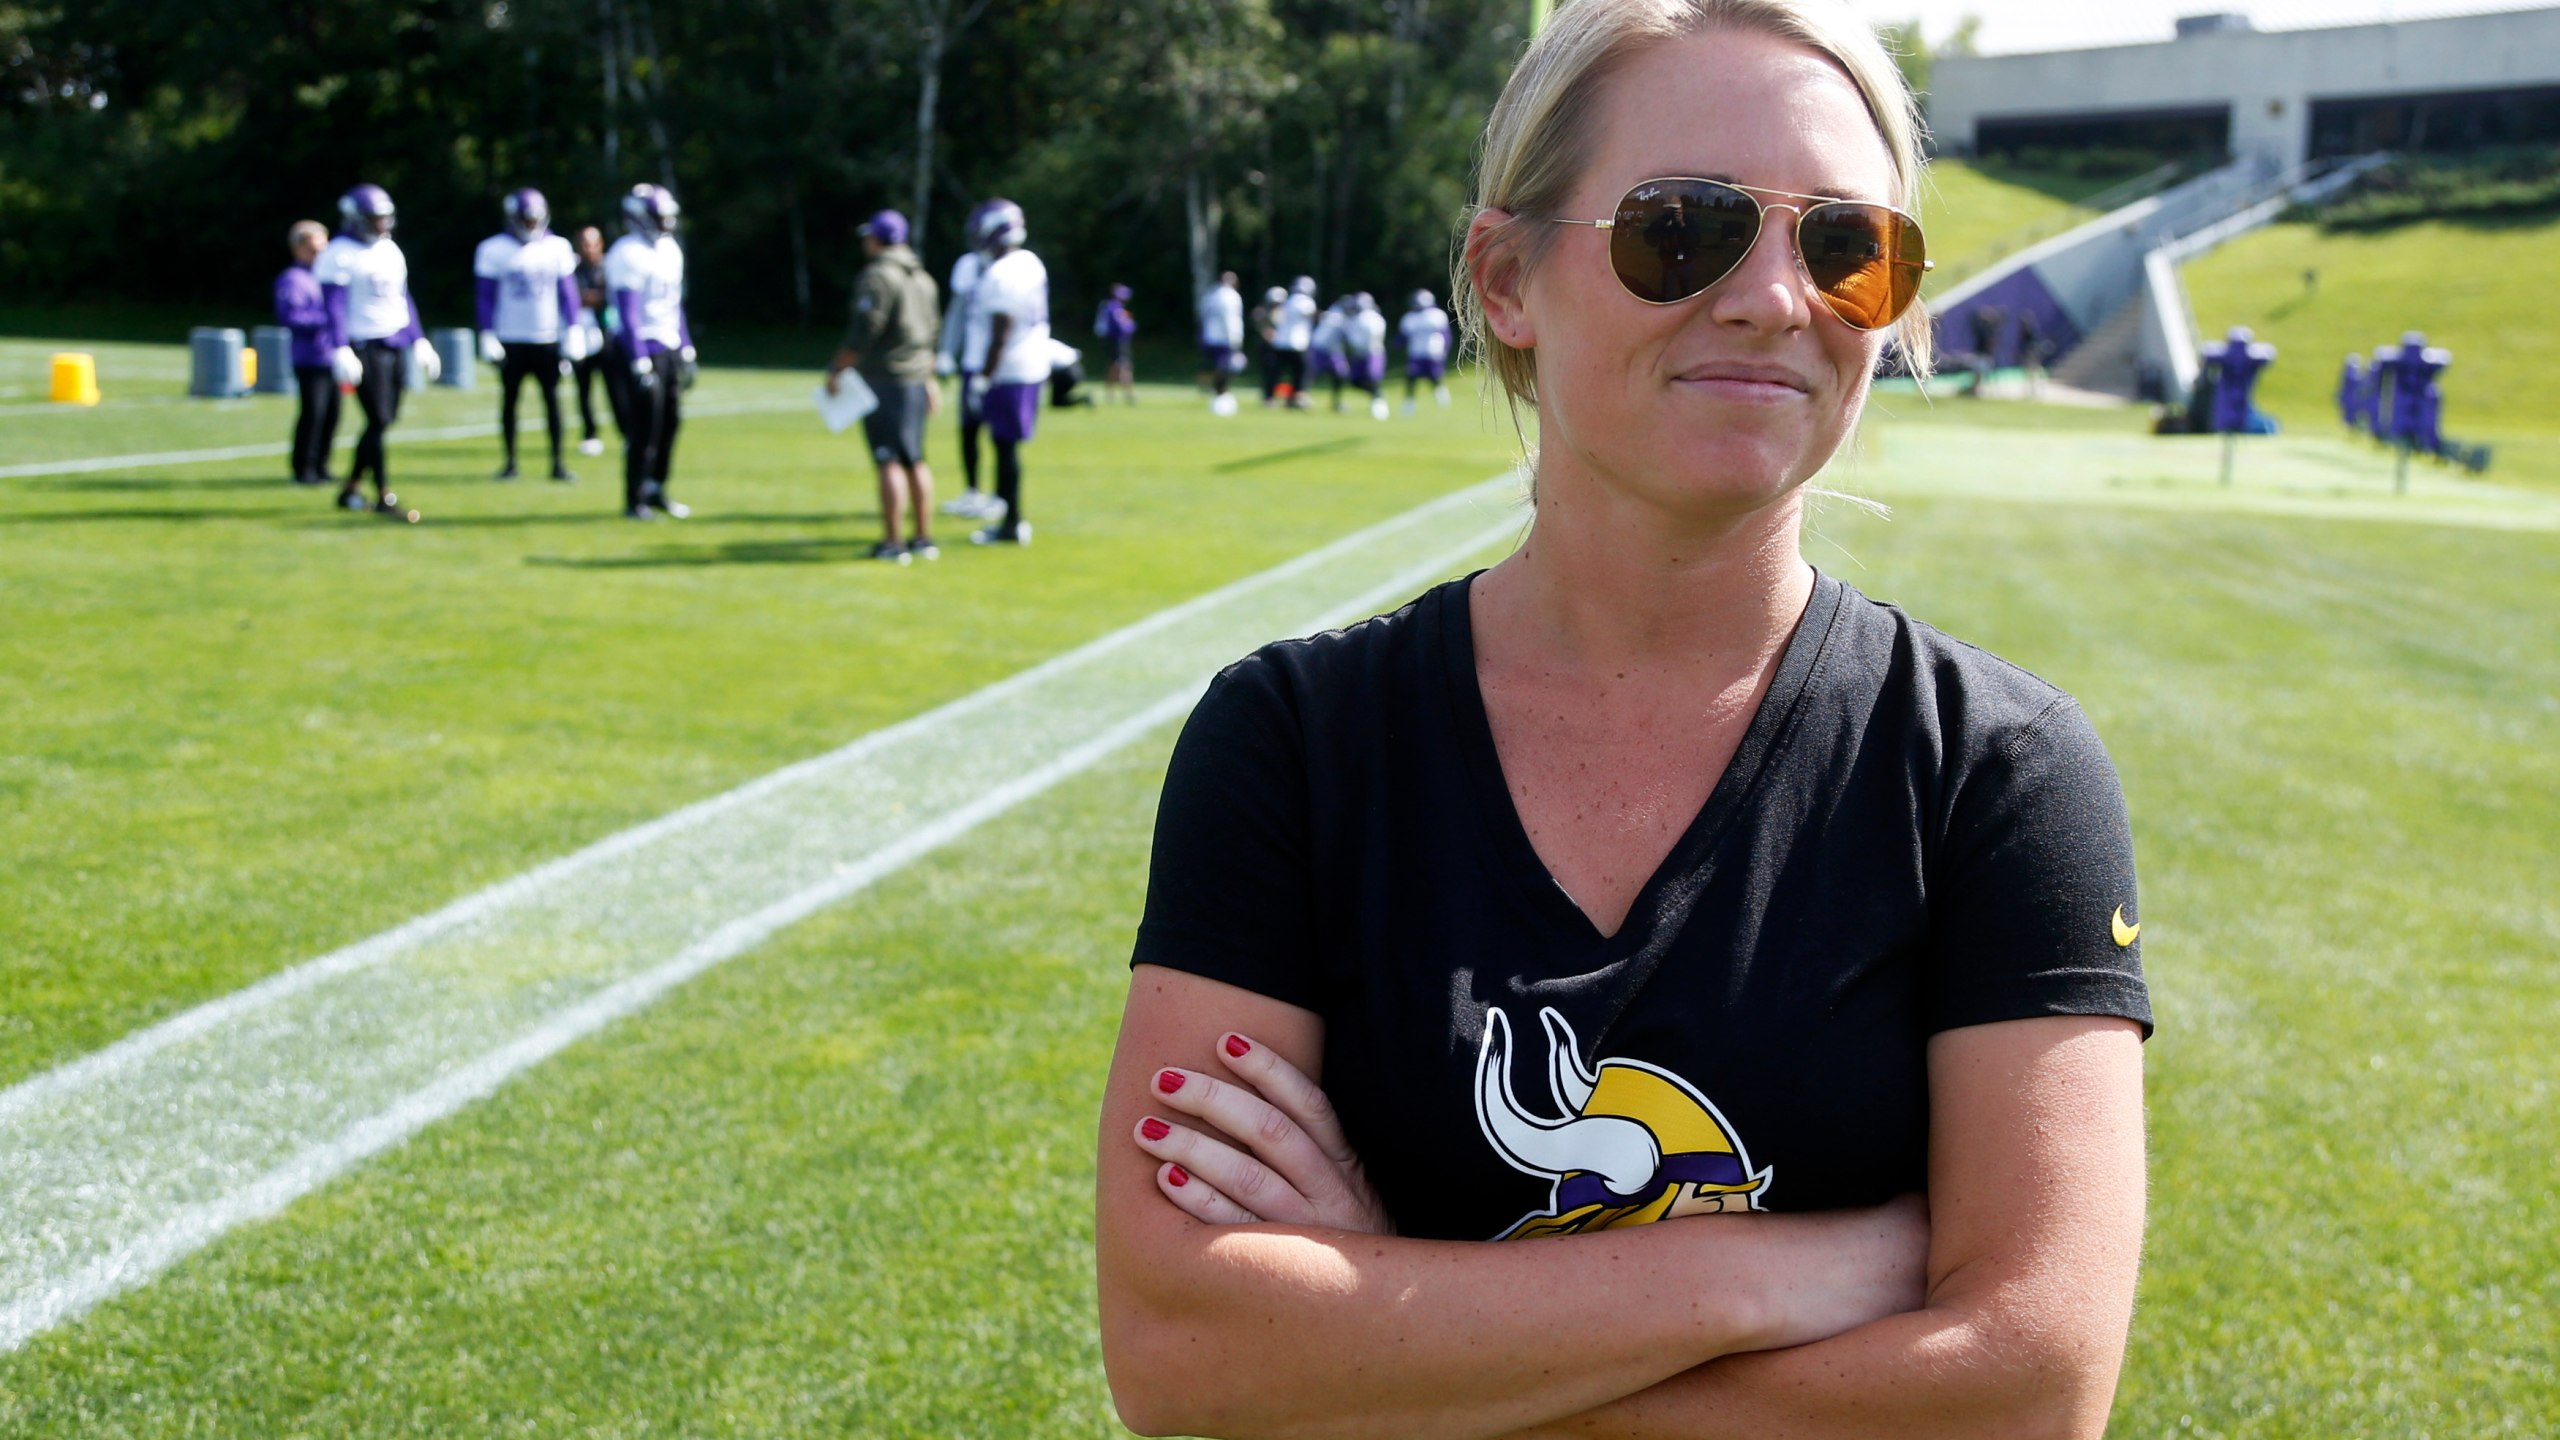 Sheboygan native hired by Broncos, highest-ranking female scouting exec in NFL